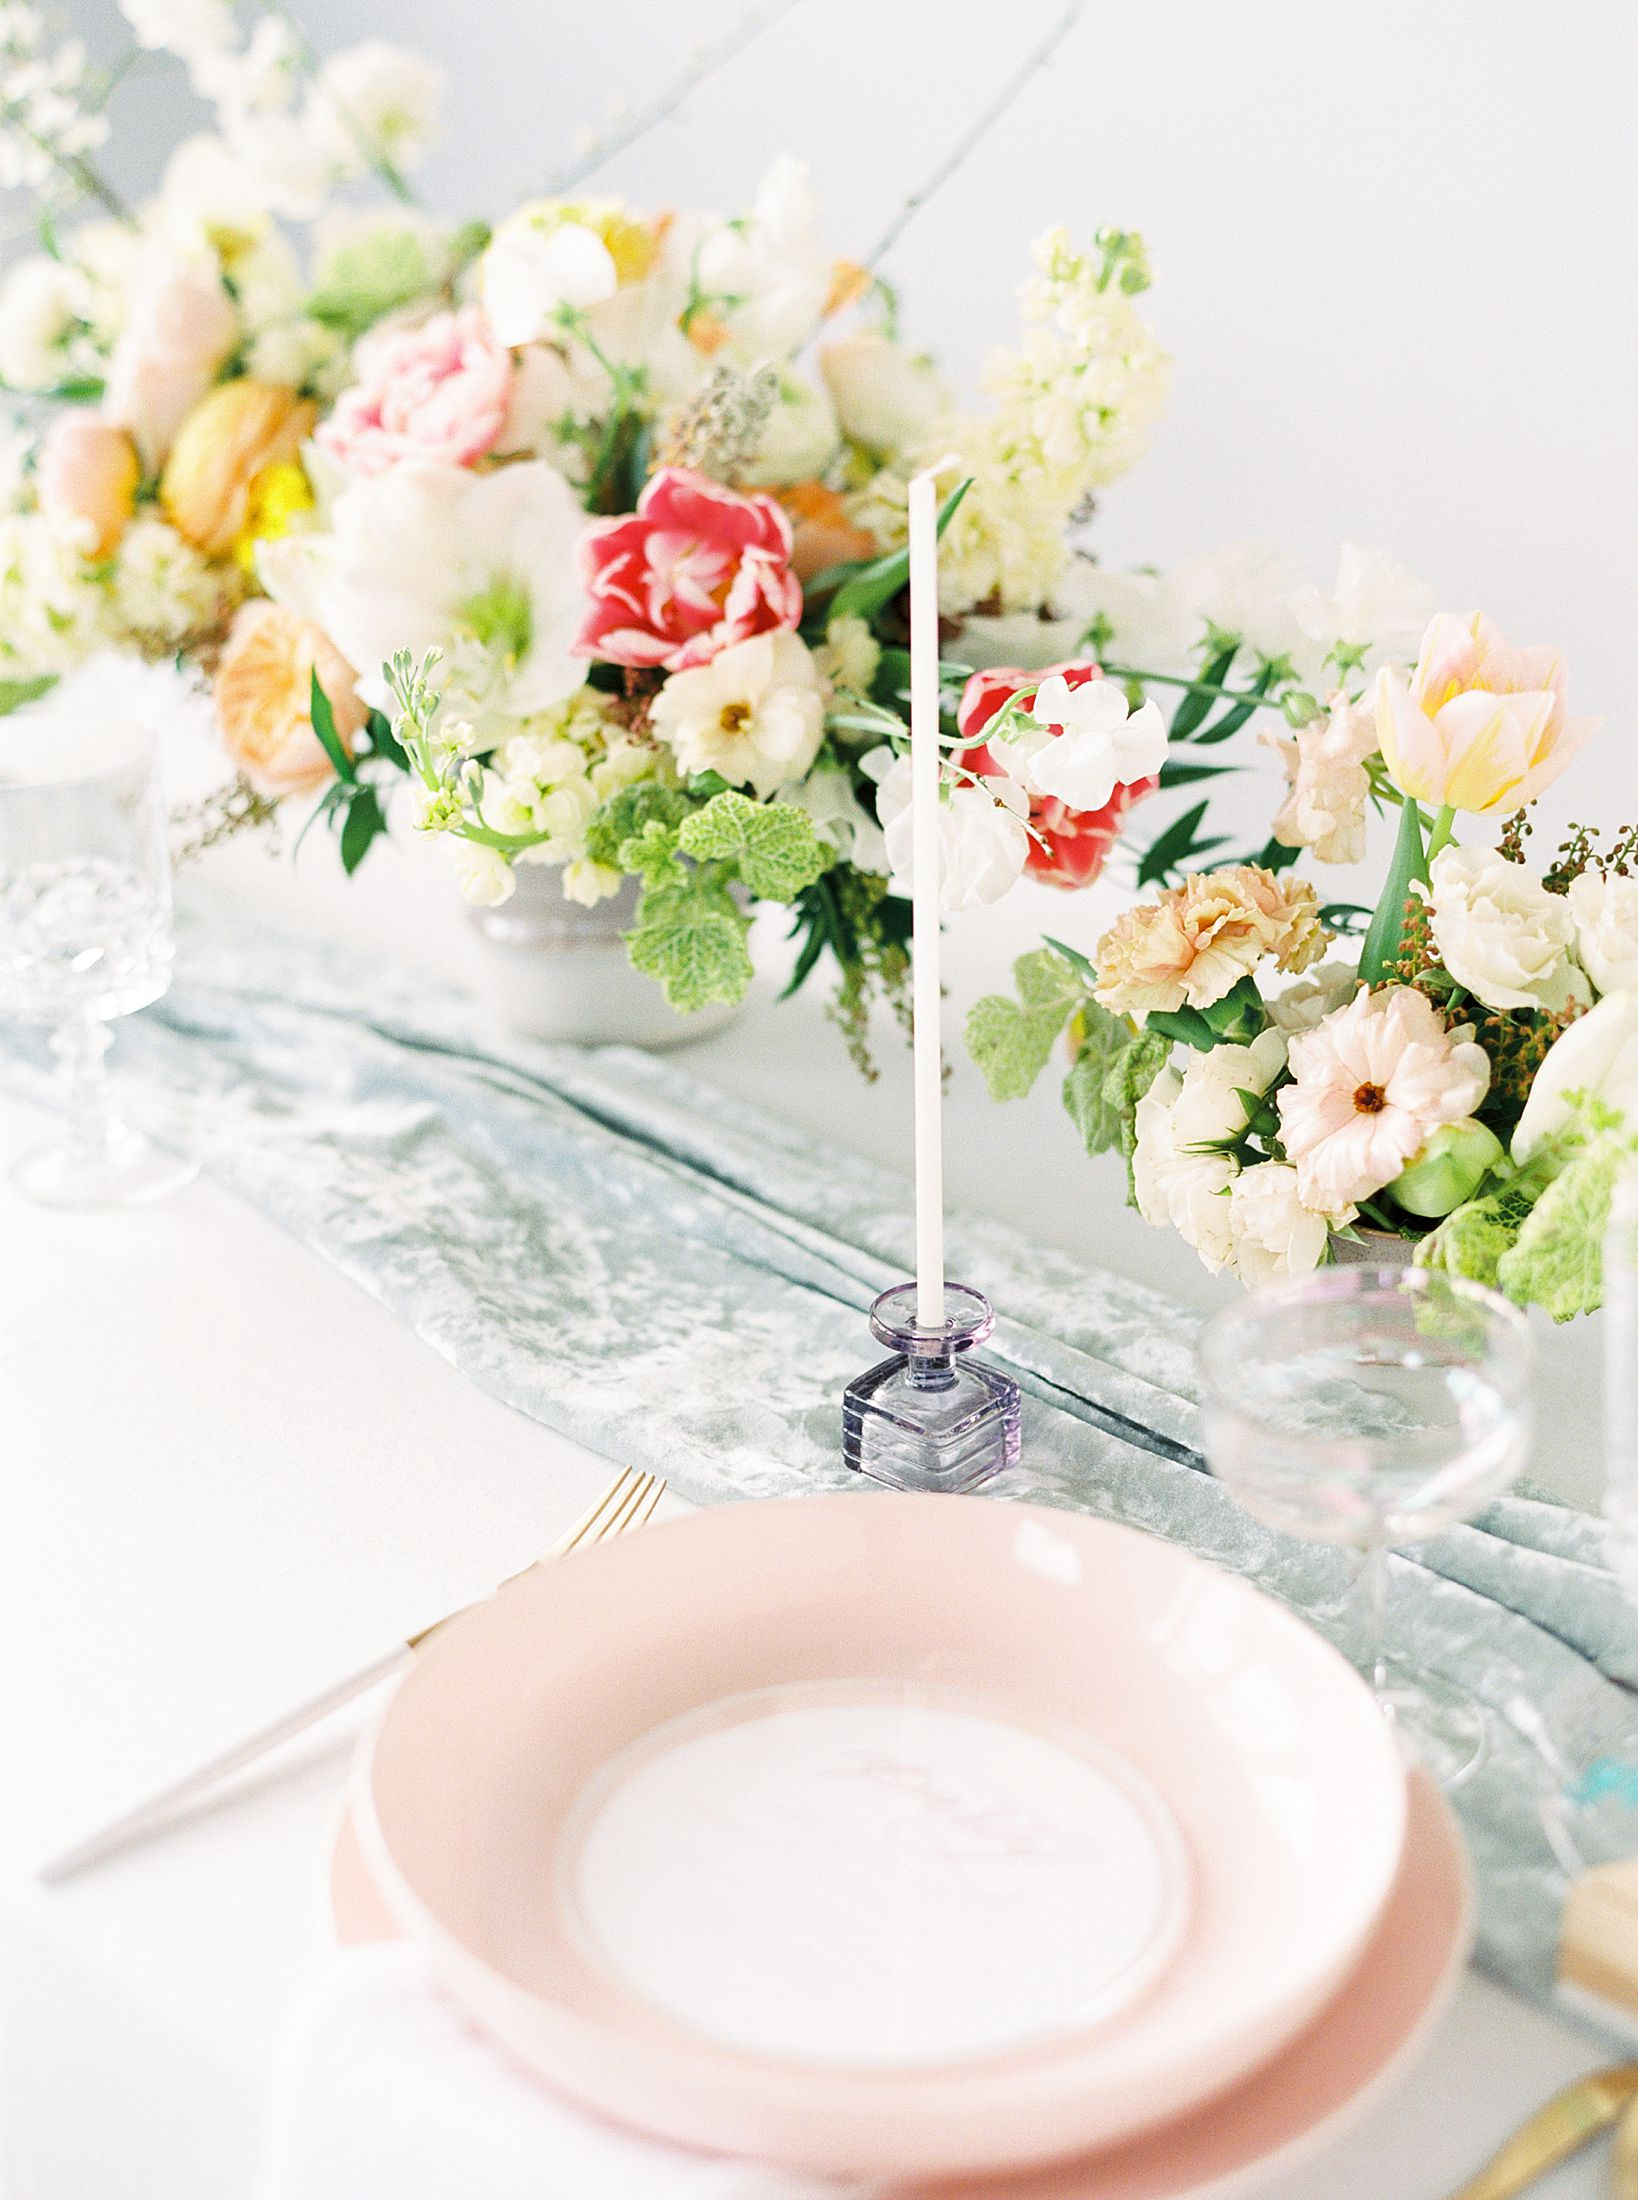 Bay Area Spring Wedding Inspiration - Ashley Baumgartner - Inspired By This - Party Crush Studio and Lens of Lenox Videography - Bay Area Wedding Photography_0054.jpg